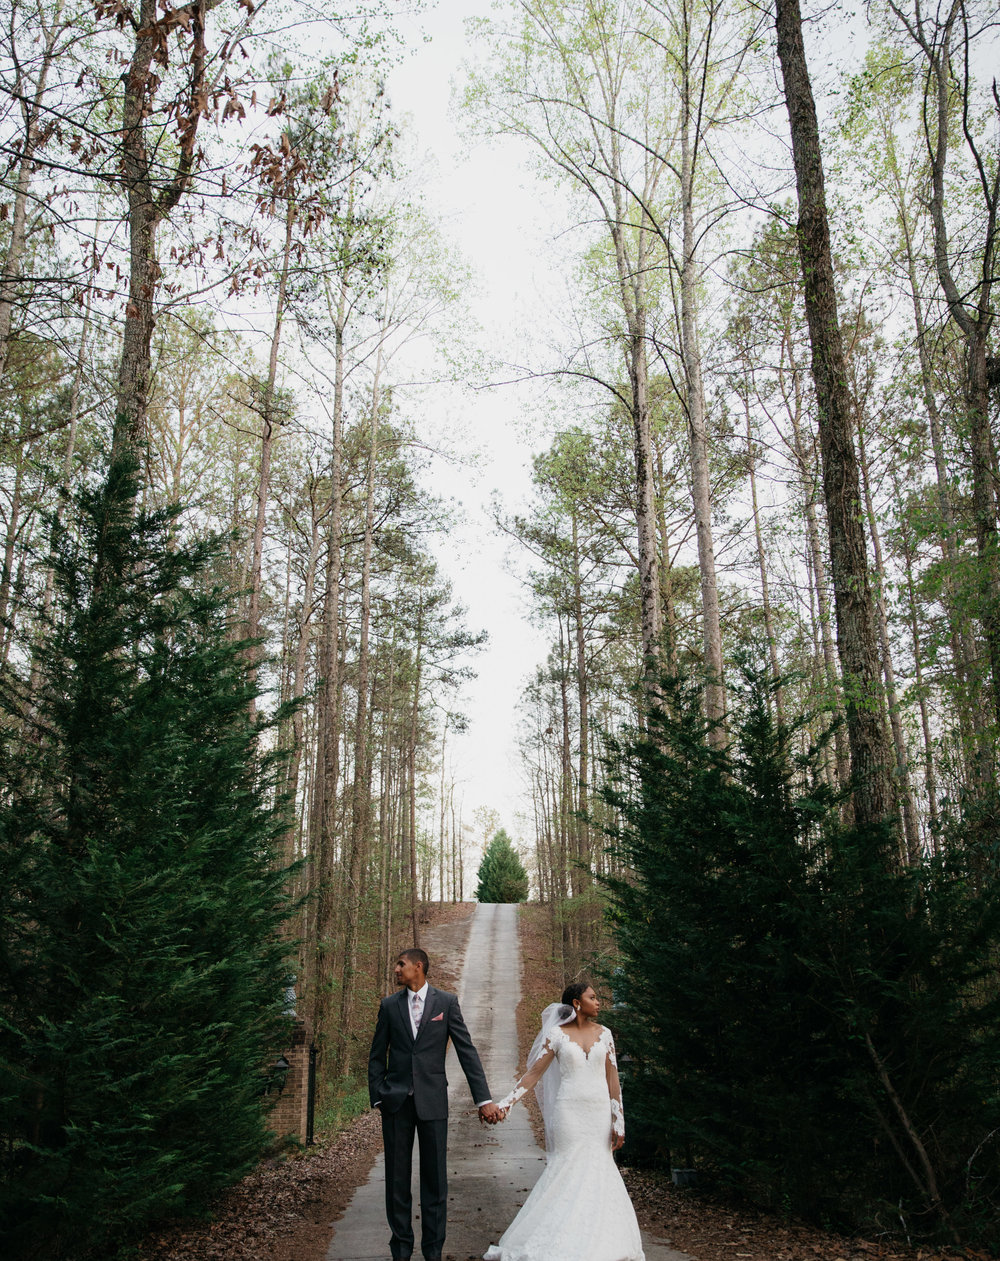 Taliah + Christopher - MARRIED